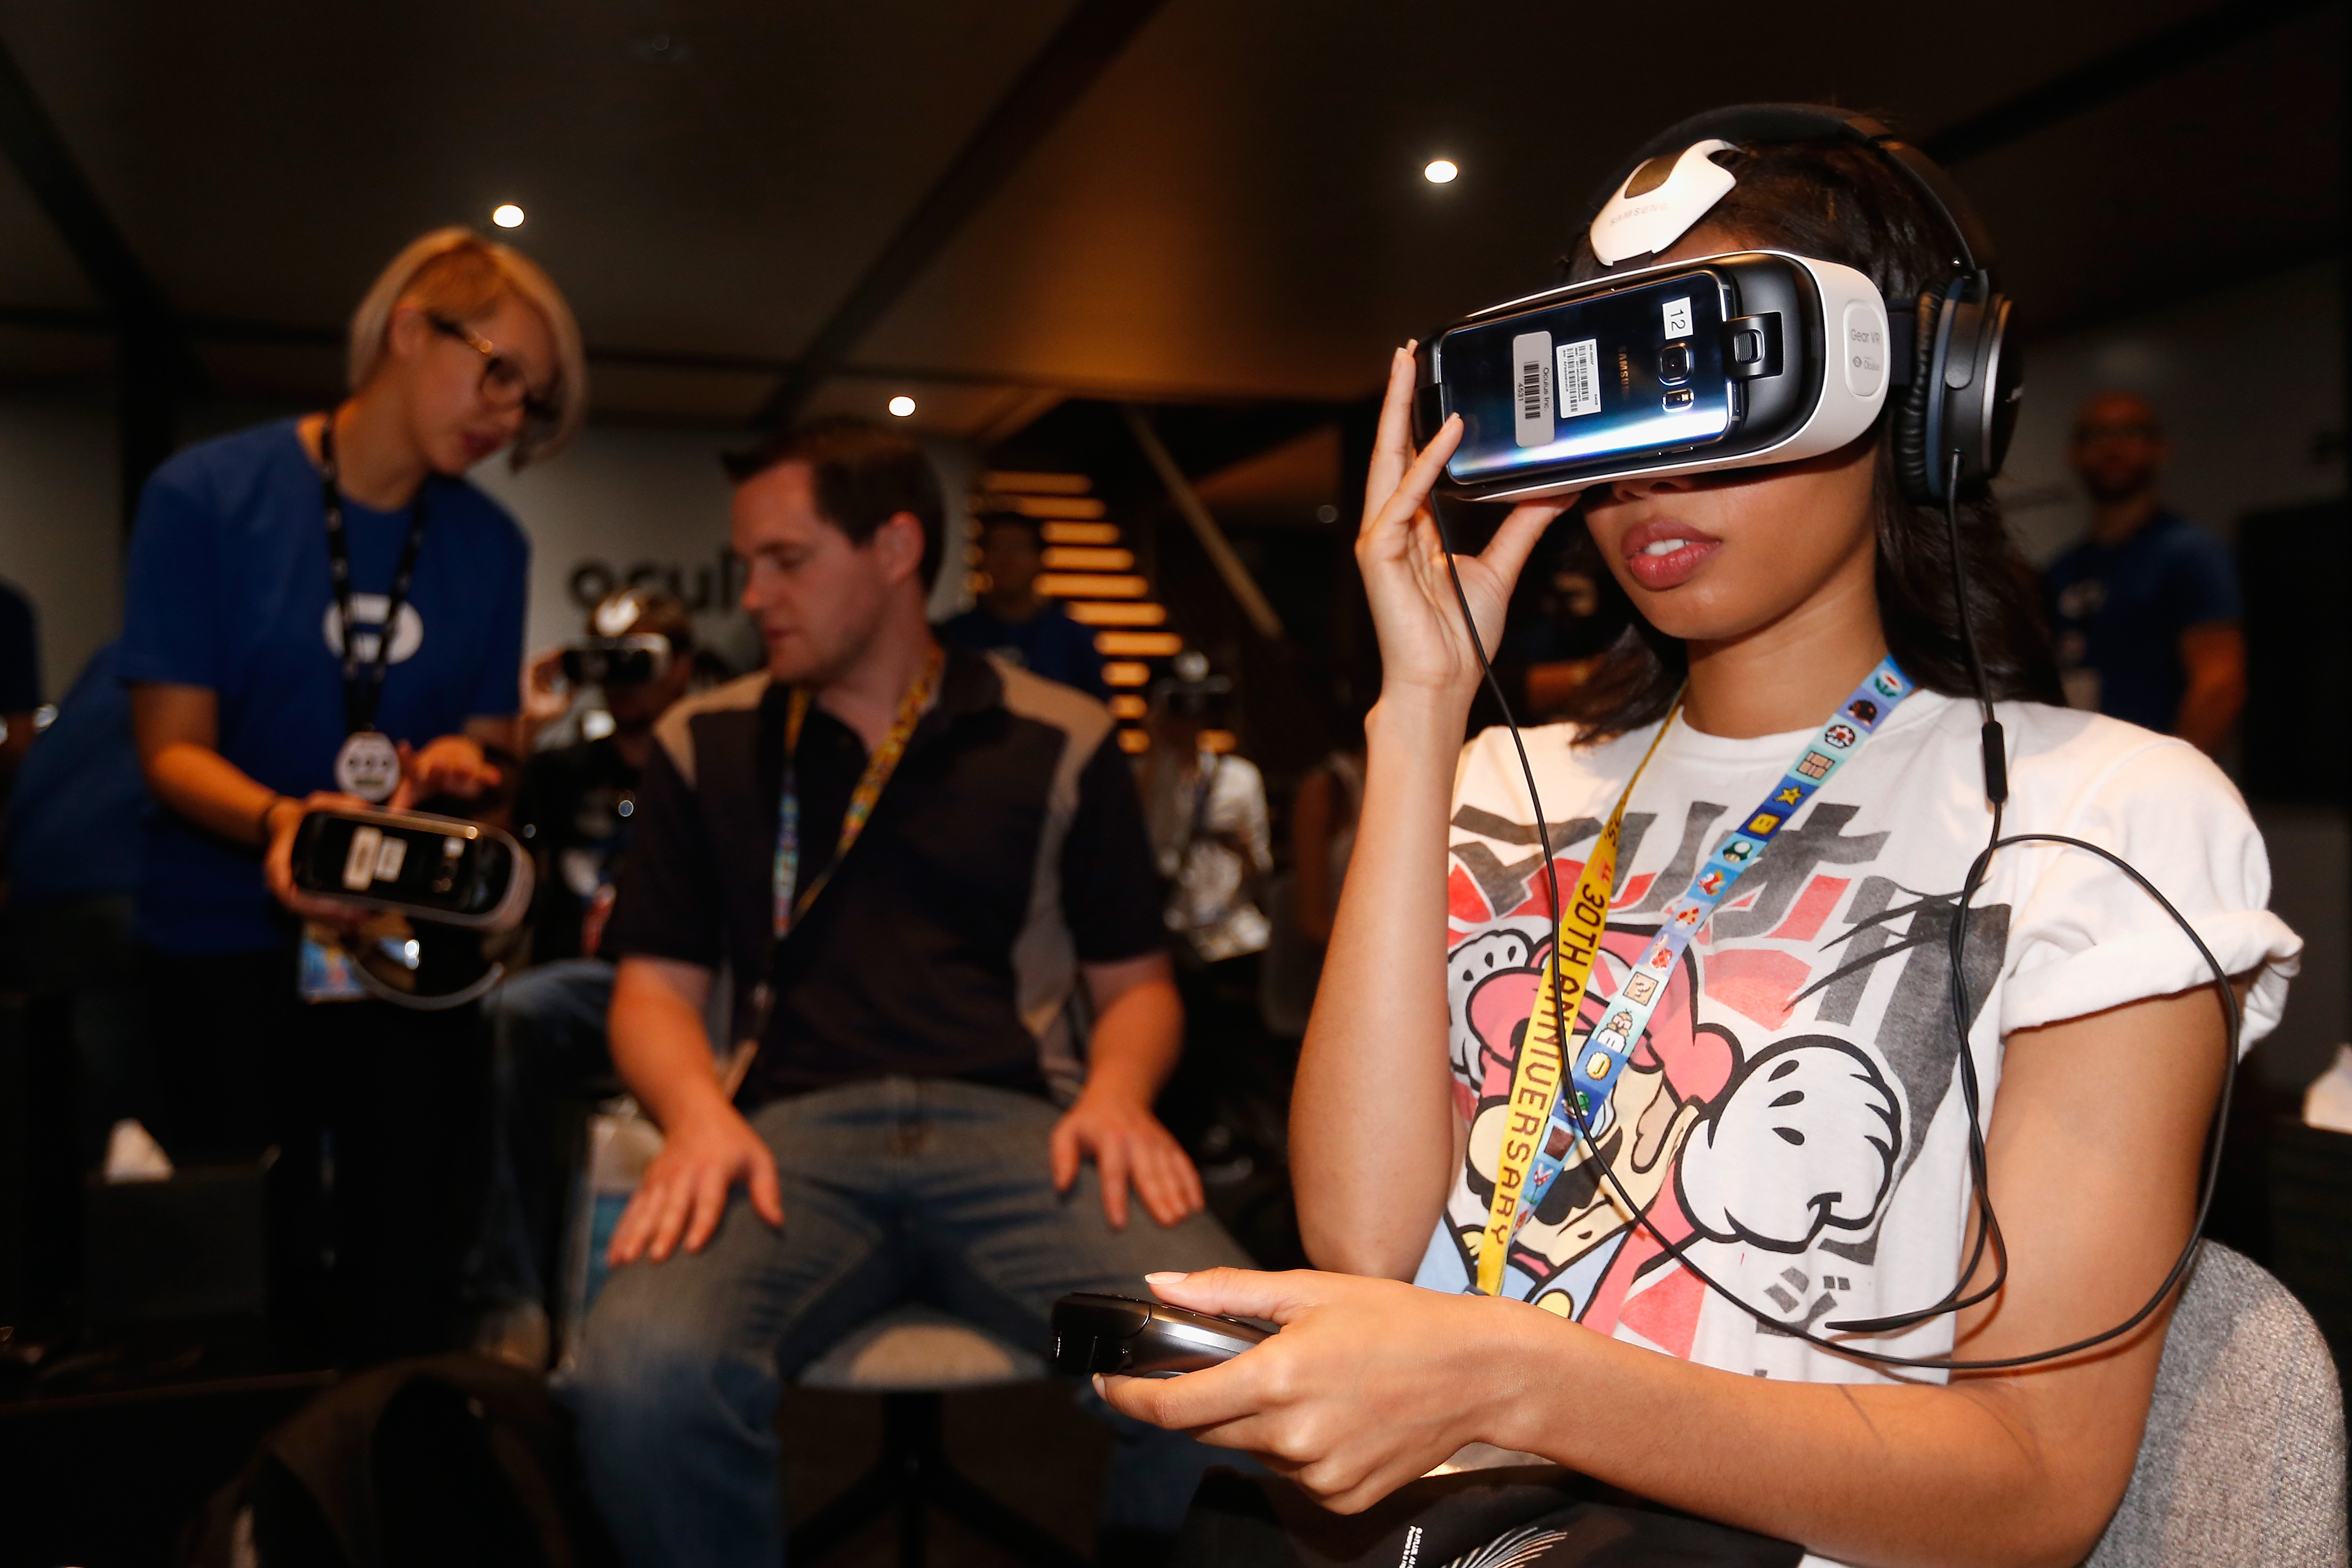 Game enthusiasts test the Samsung Gear VR powered by Oculus at the Annual Gaming Industry Conference E3 at  the Los Angeles Convention Center on June 16, 2015 in Los Angeles, California.